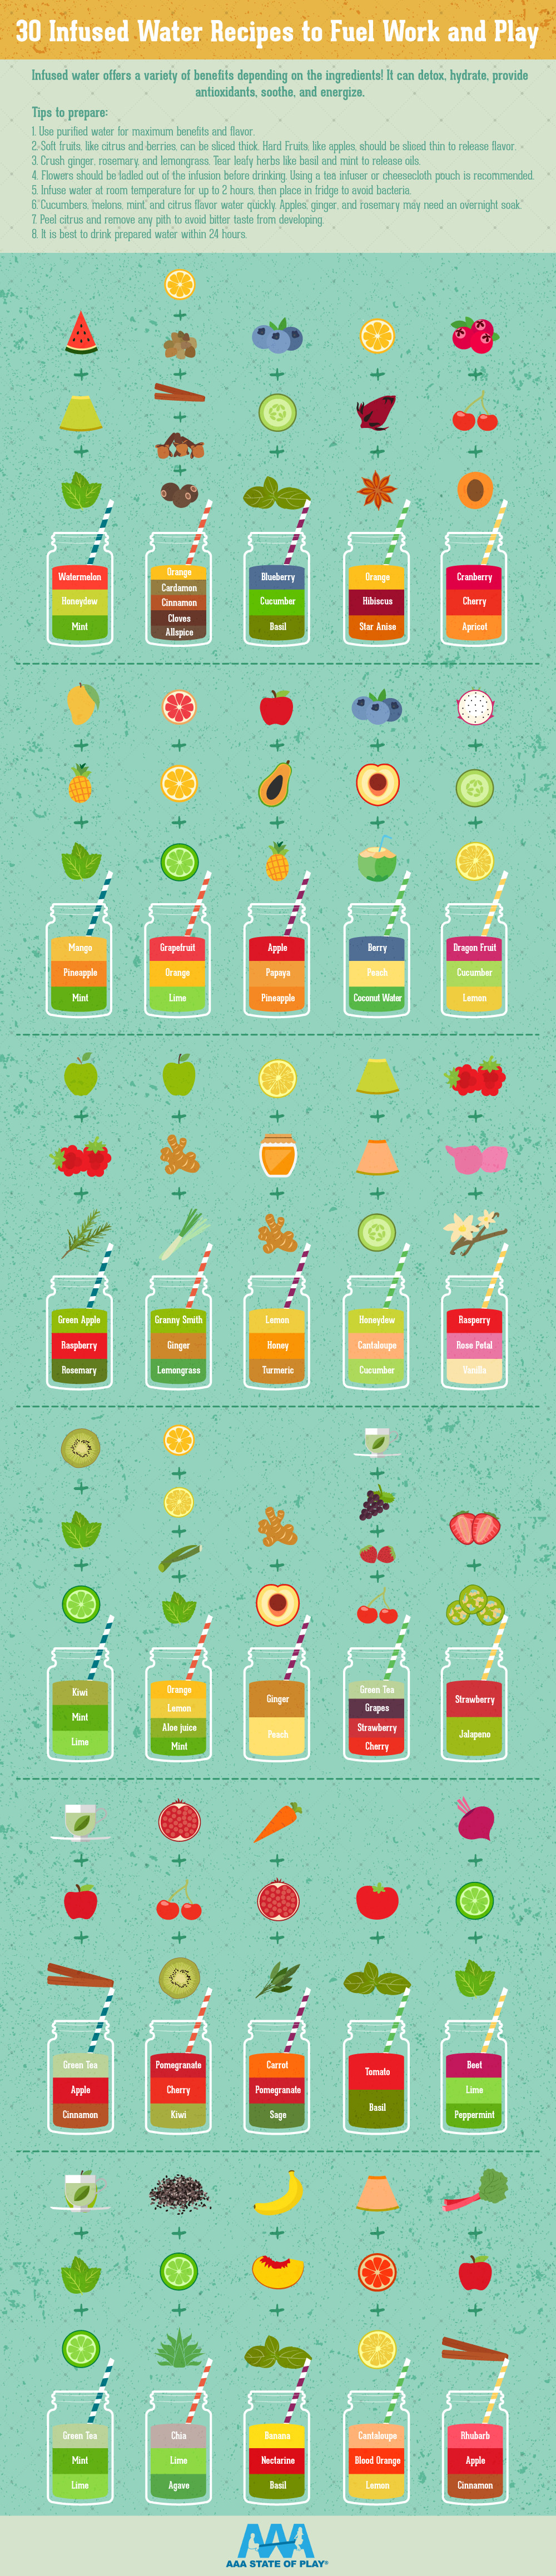 30 Infused Water Recipes to Boost Your Health! - Infographic